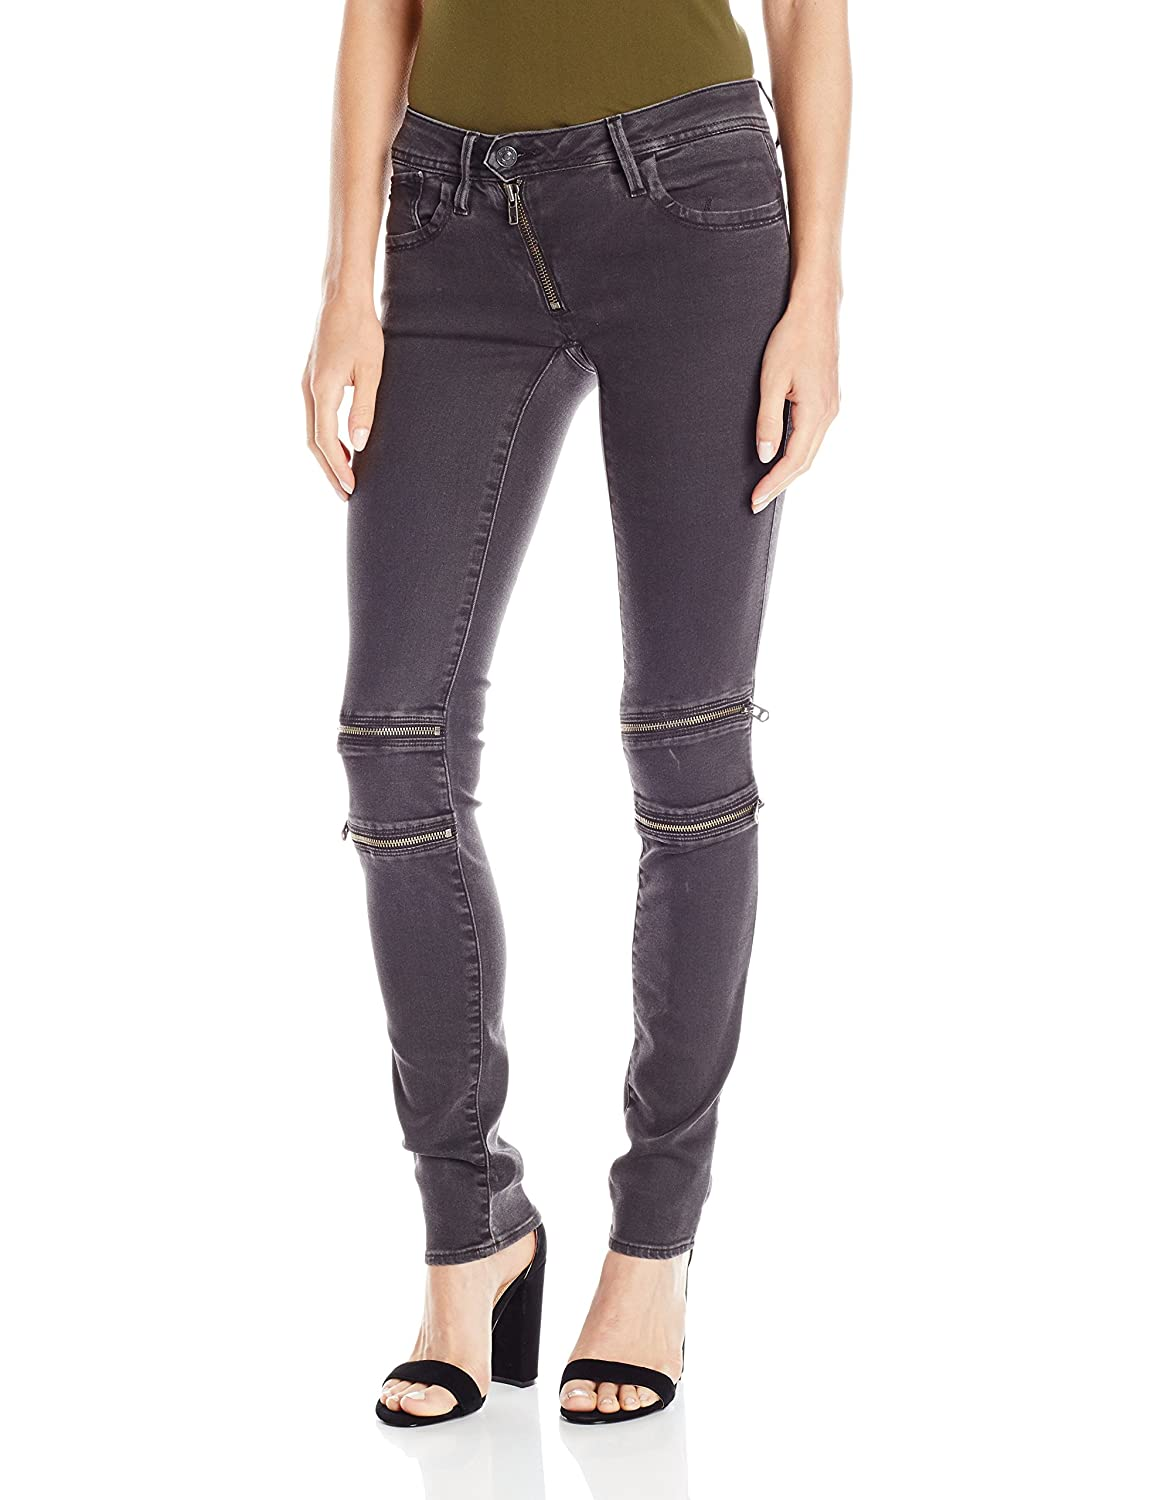 G-STAR RAW Damen Jeanshose Lynn Custom Mid Skinny Co